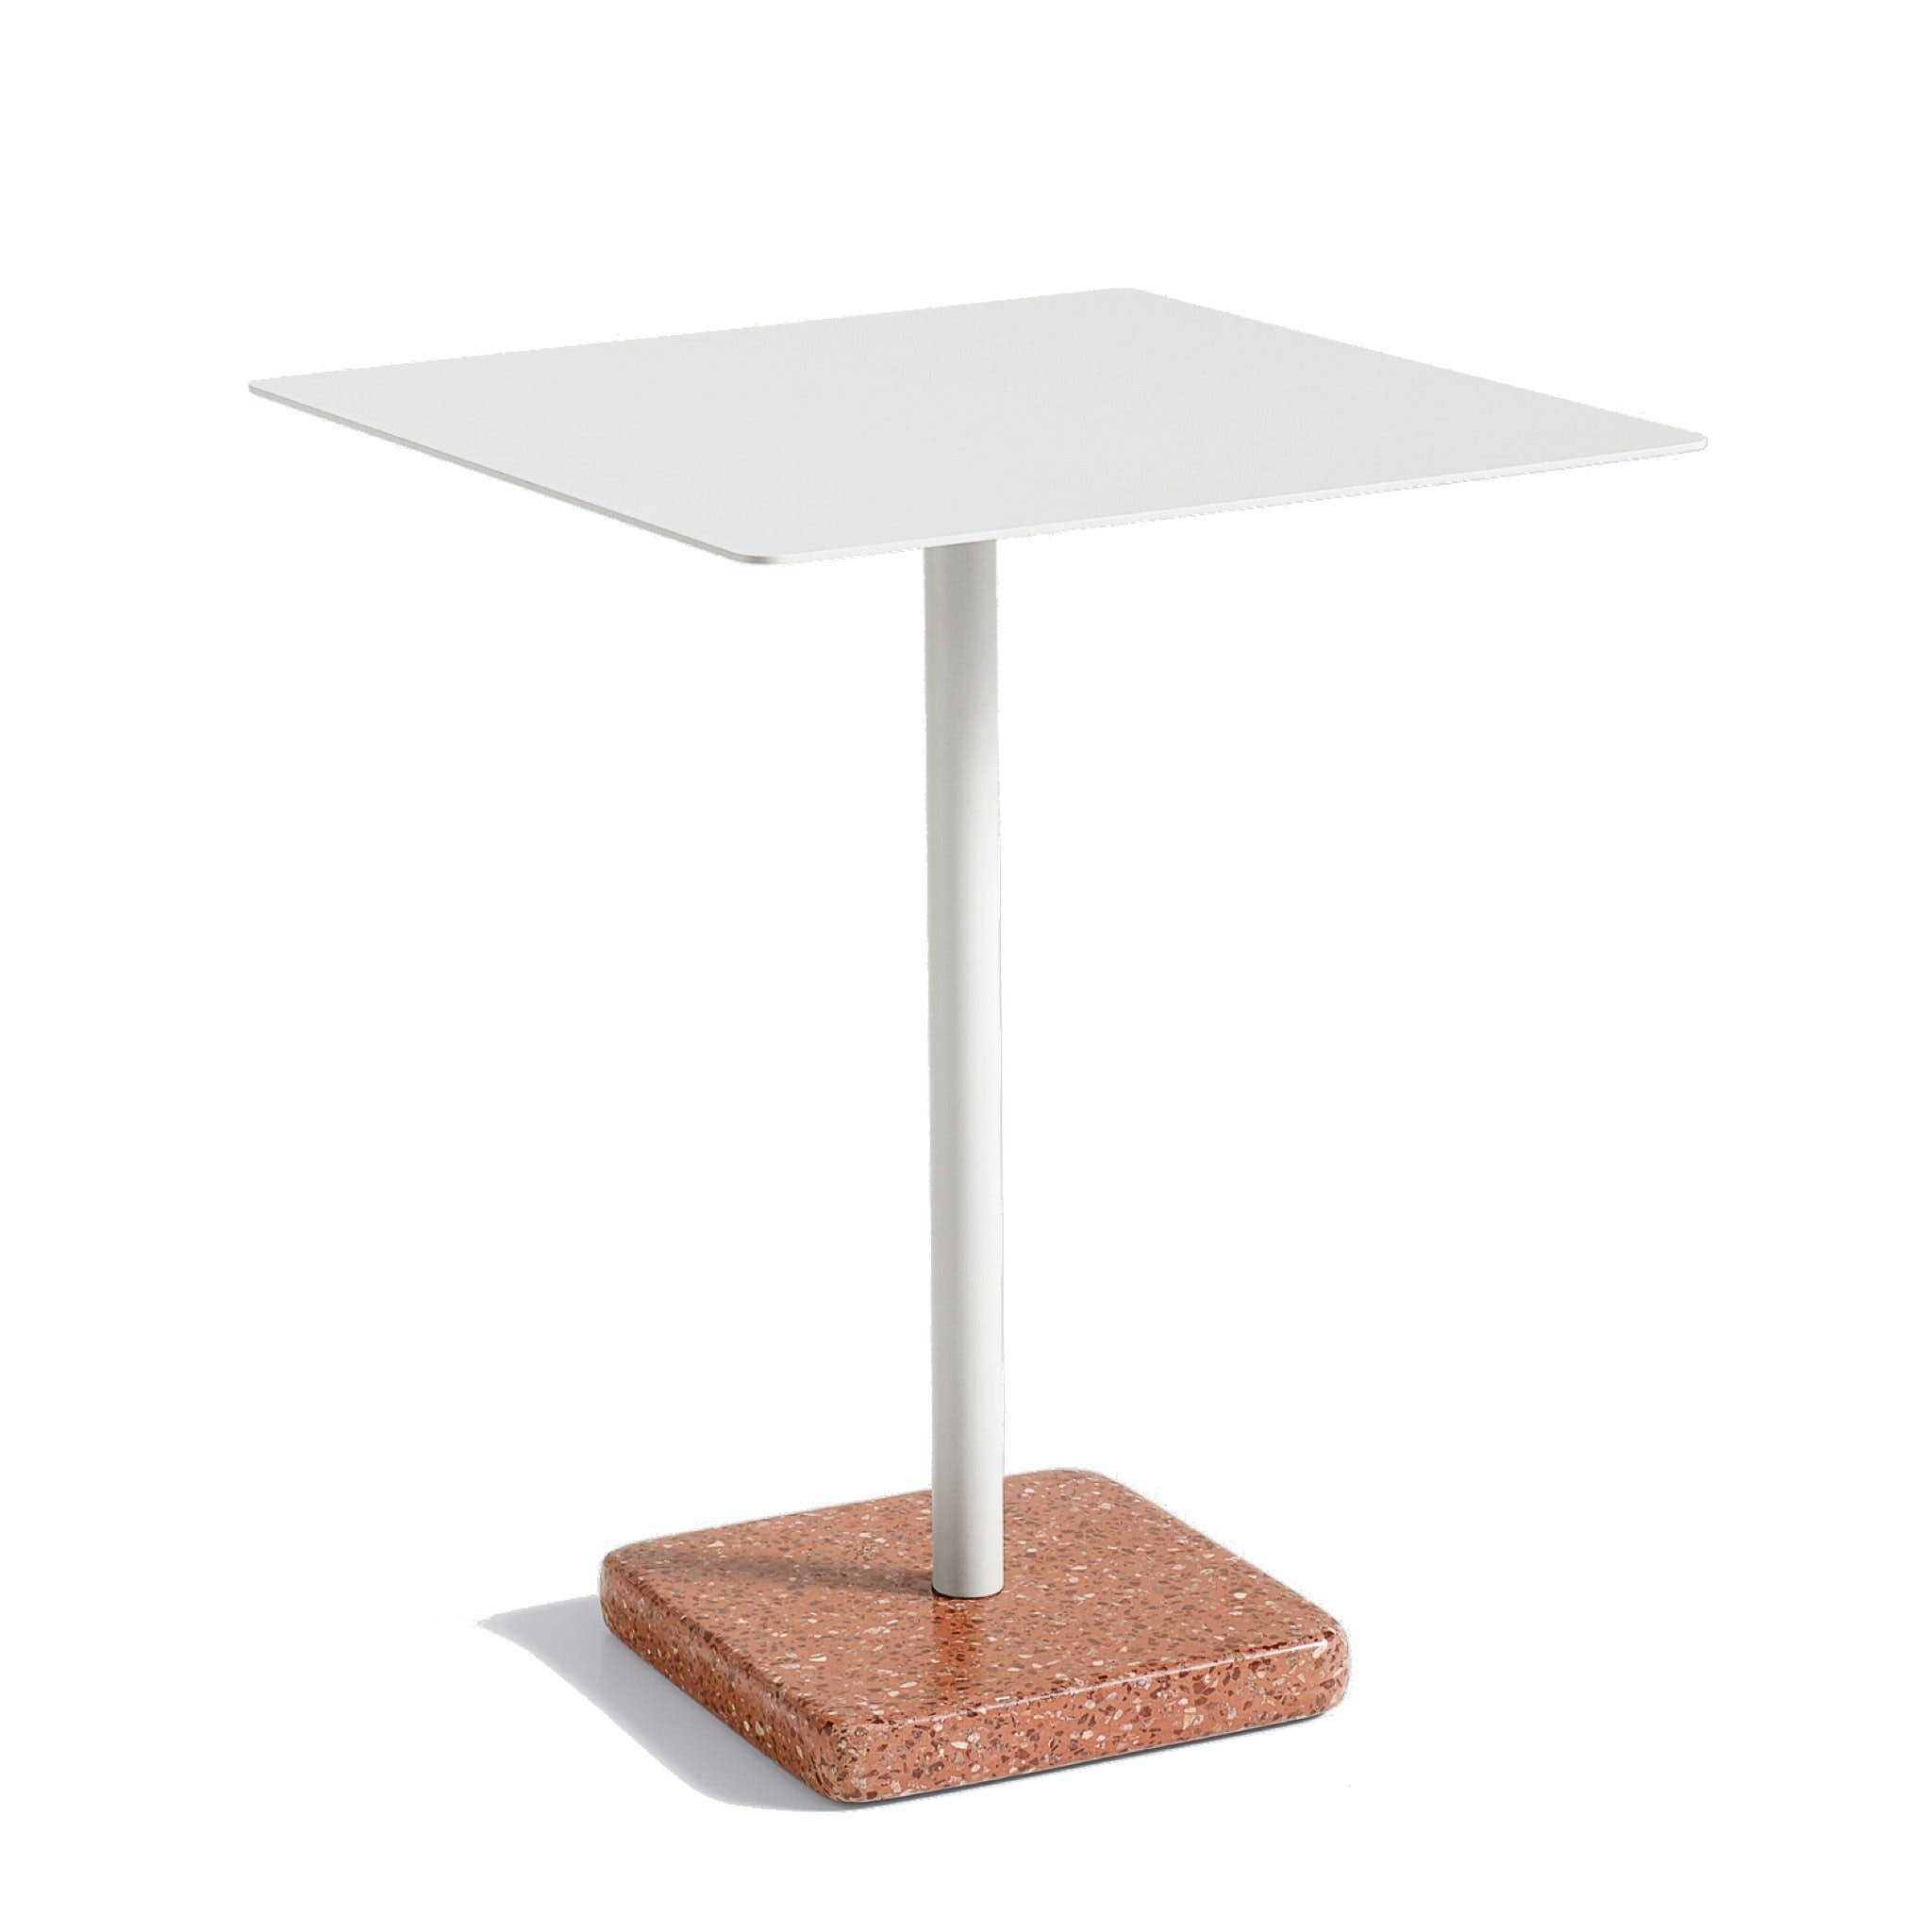 Terrazzo Table Square by HAY